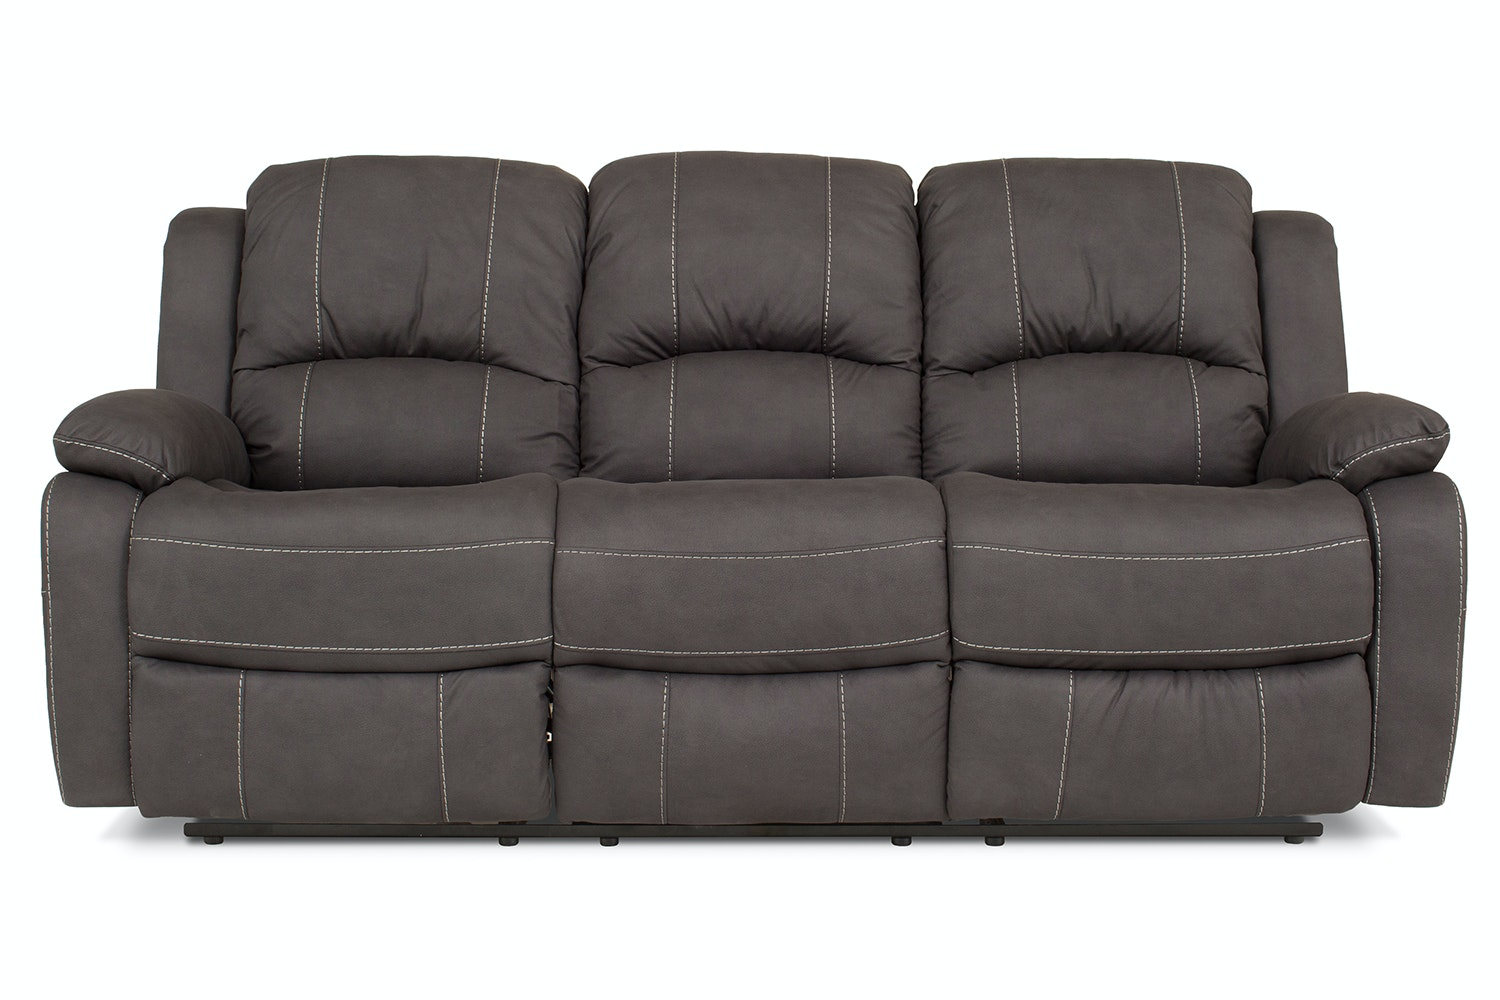 Ramona 3 Seater Recliner